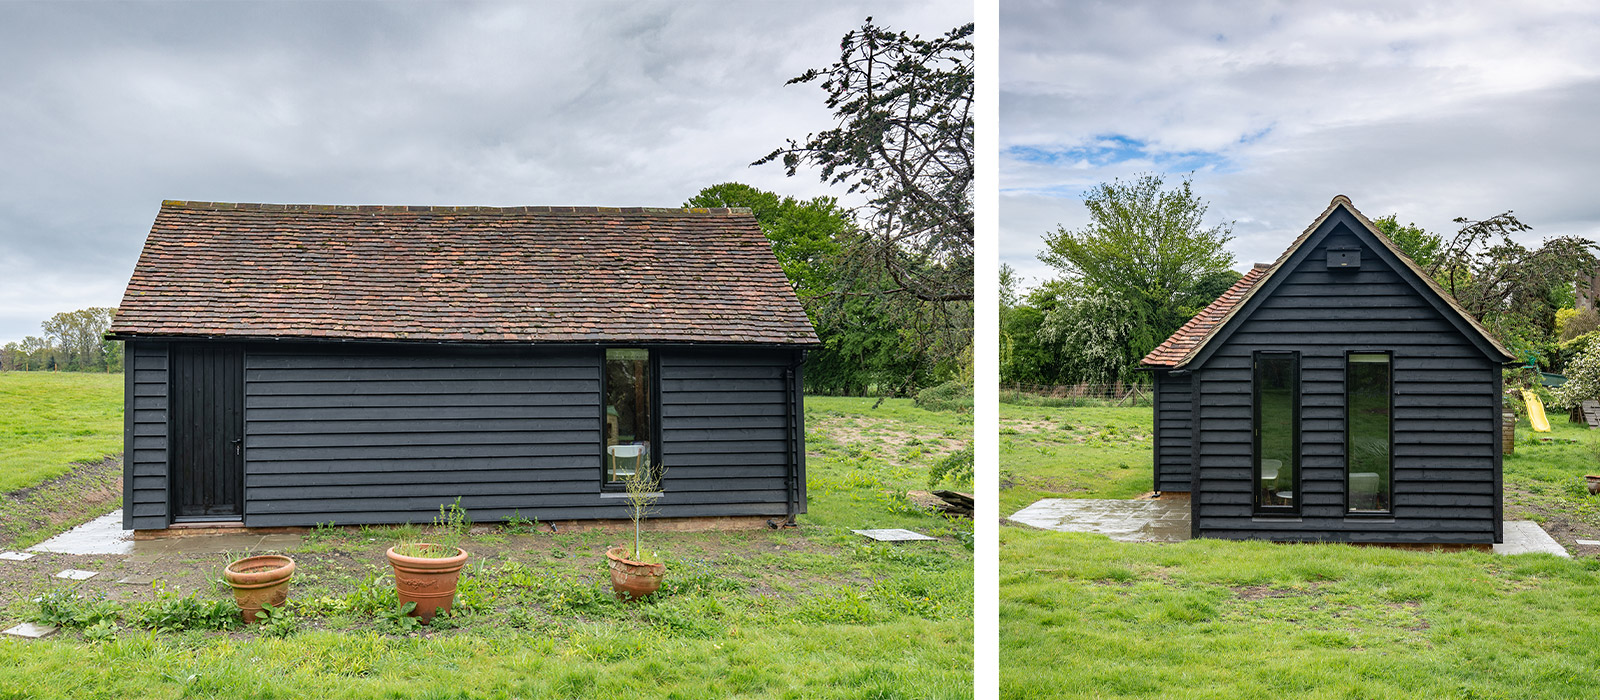 gyd-architecture | kent peg tiled roof with black cladding